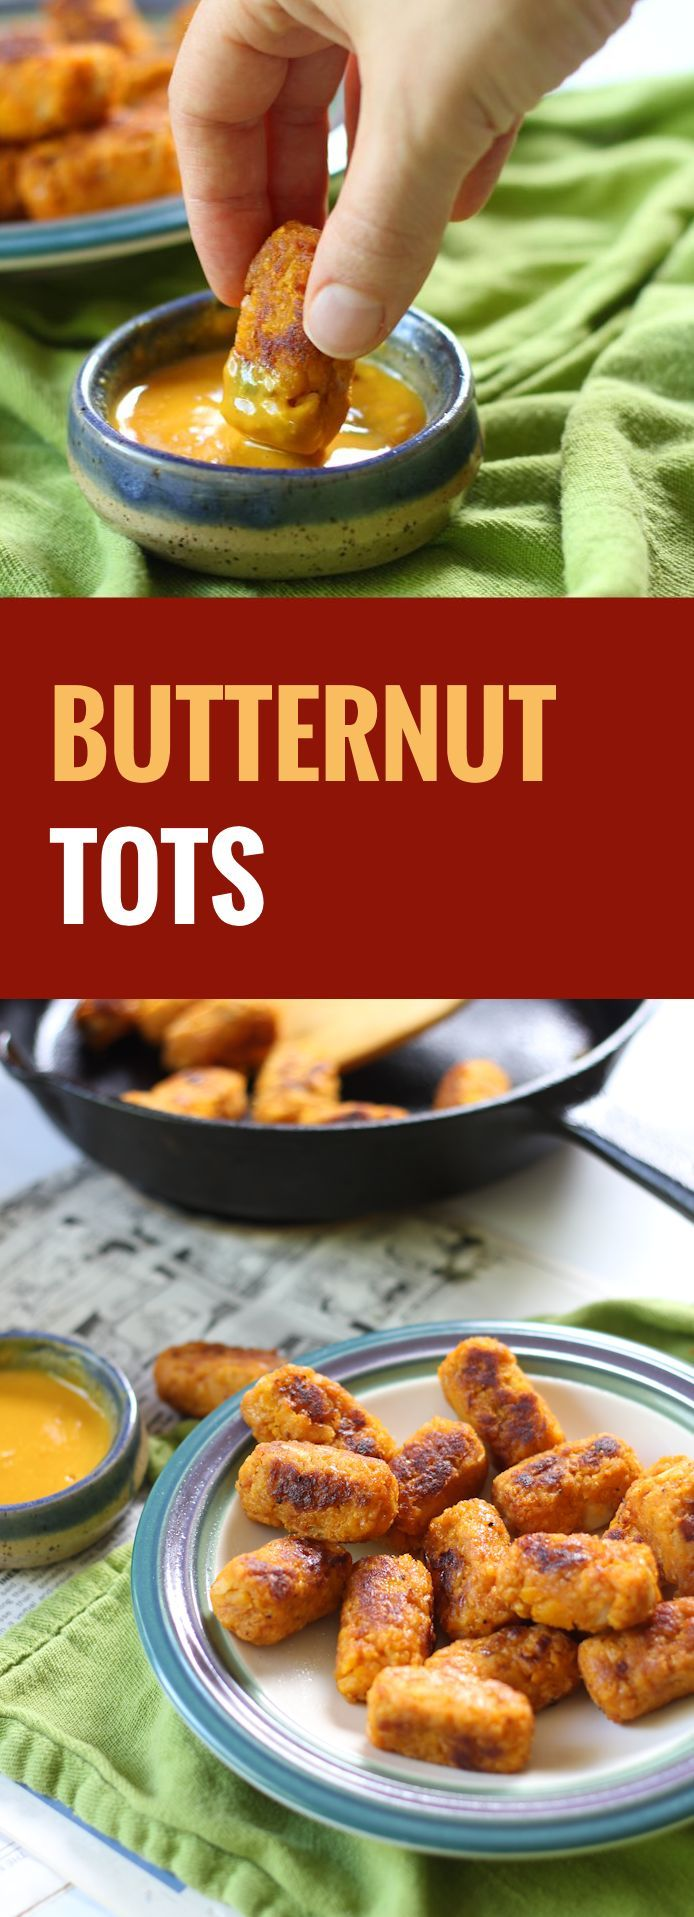 These lightly seasoned pan-fried buttenut tots will satisfy all your tot cravings, with a bonus velvety sweeness you get only from fall butternut squash.